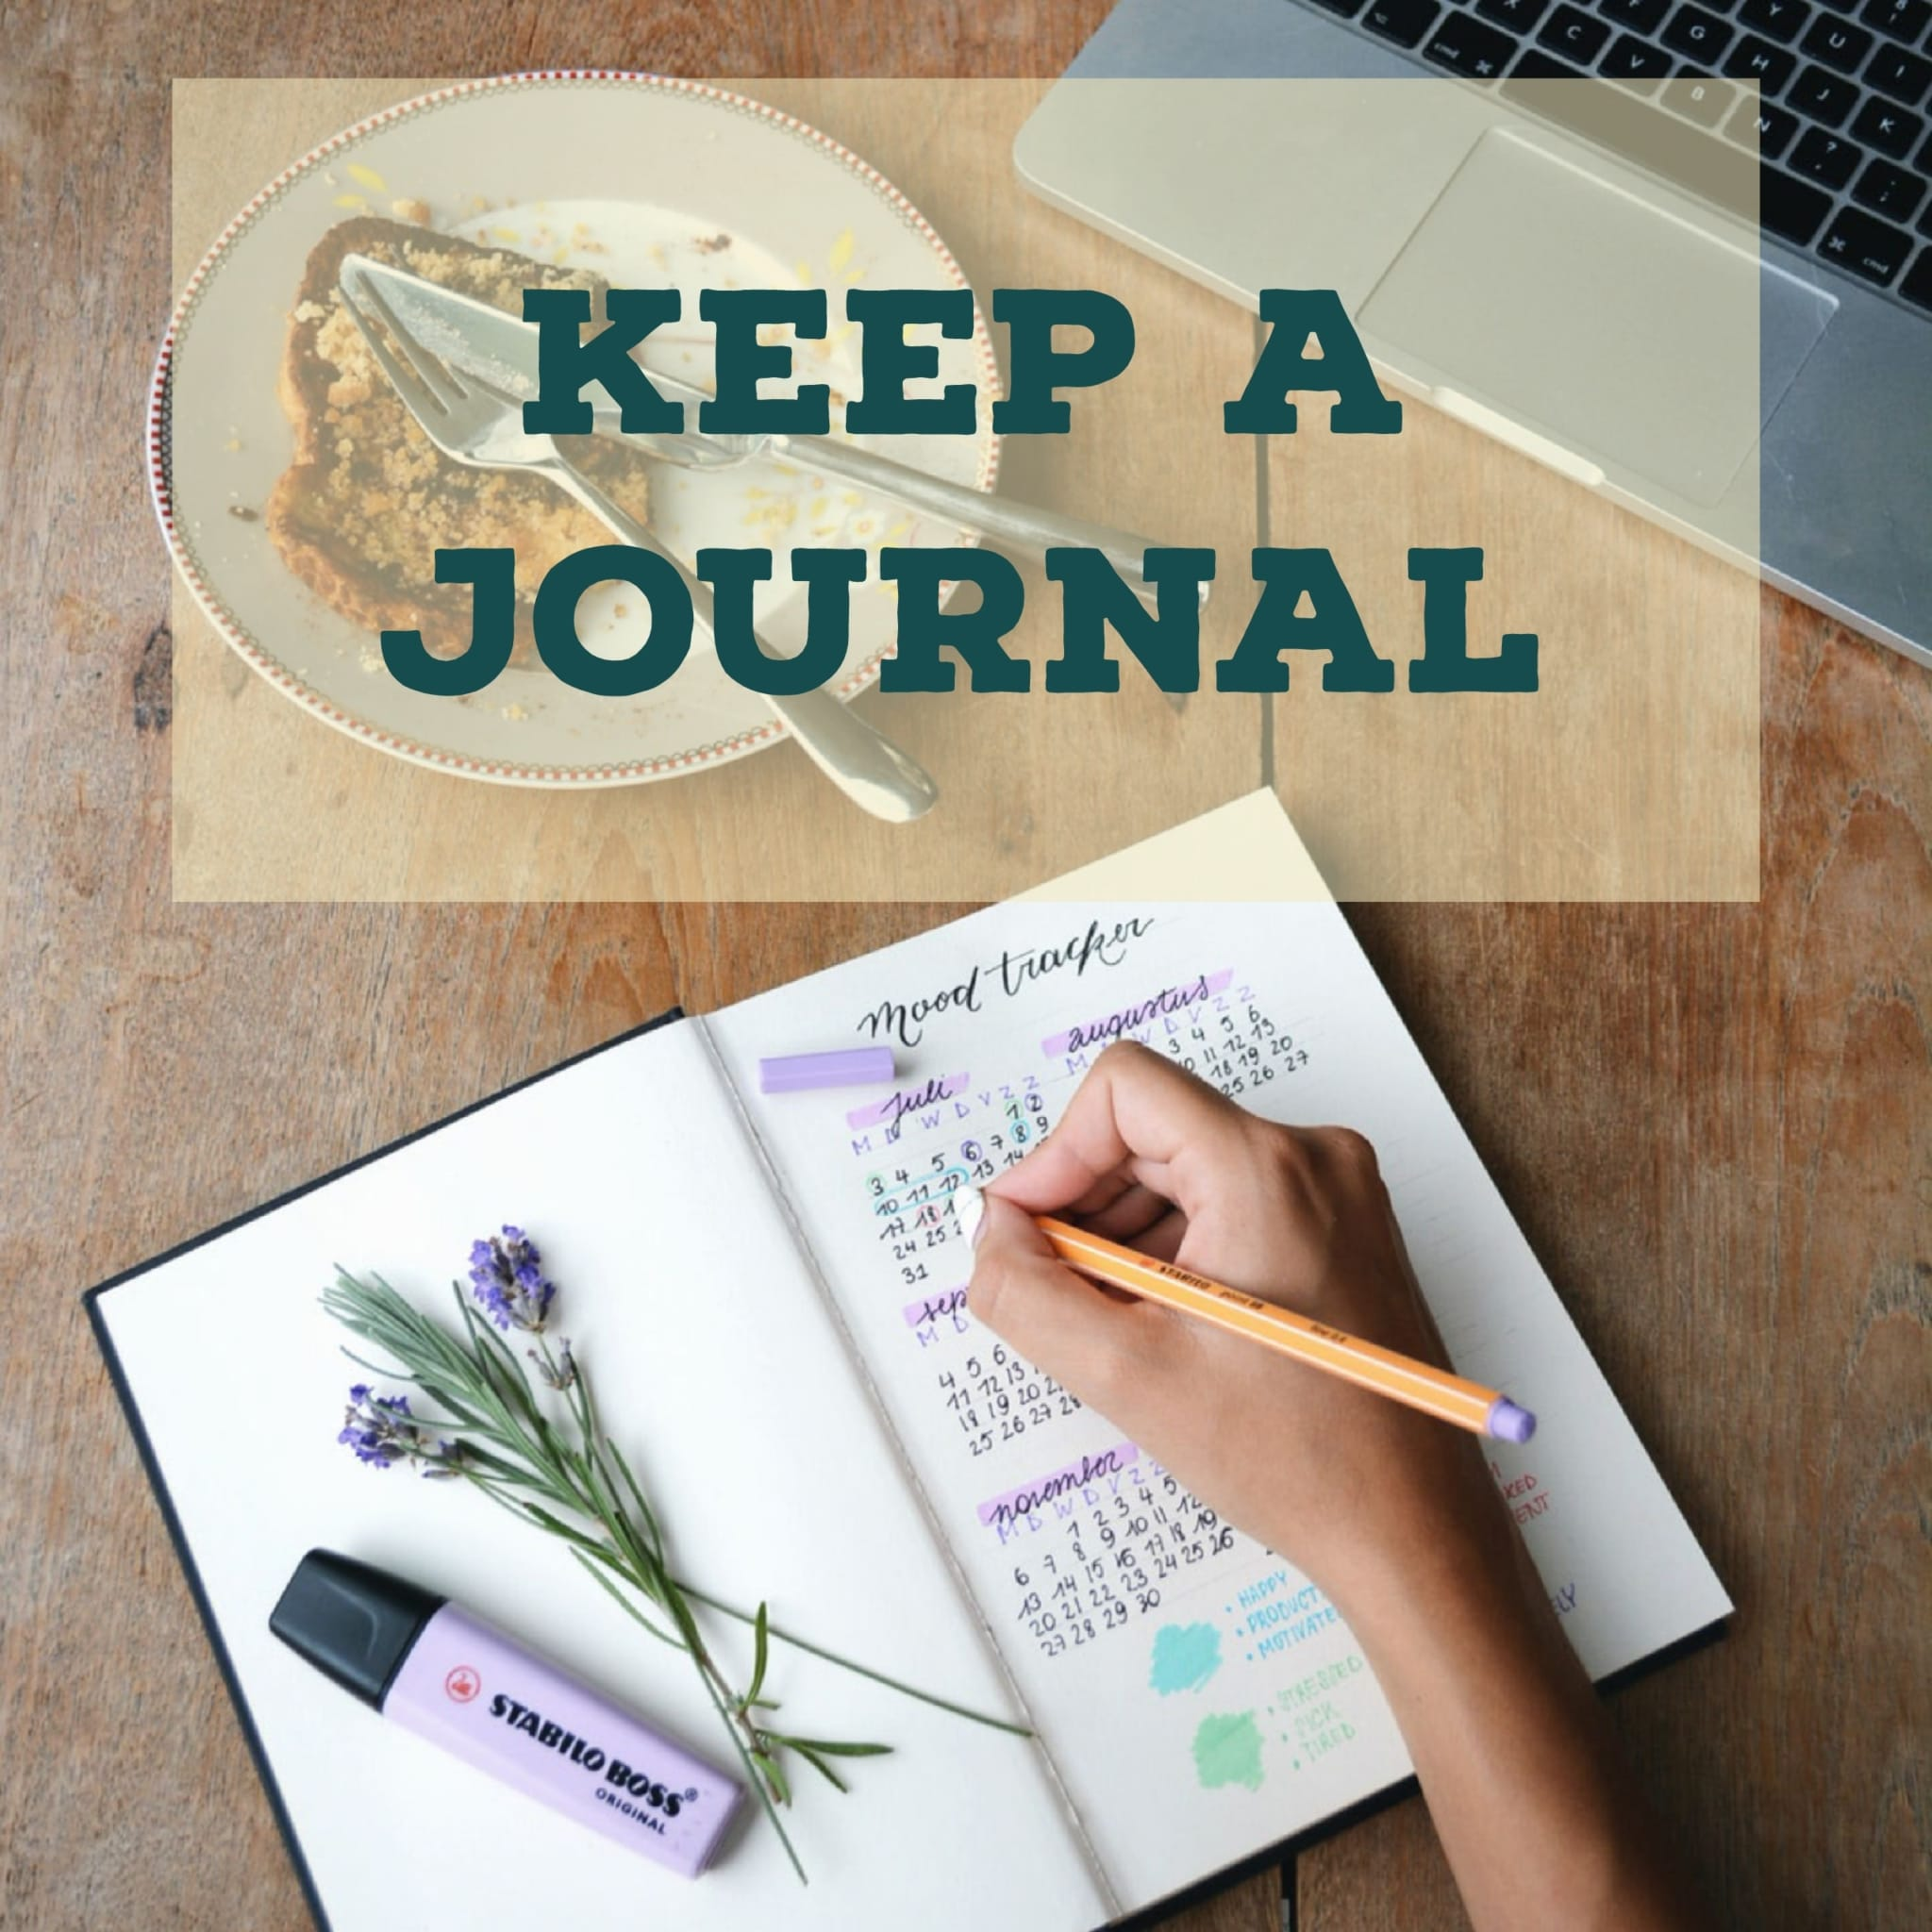 Keep a Journal